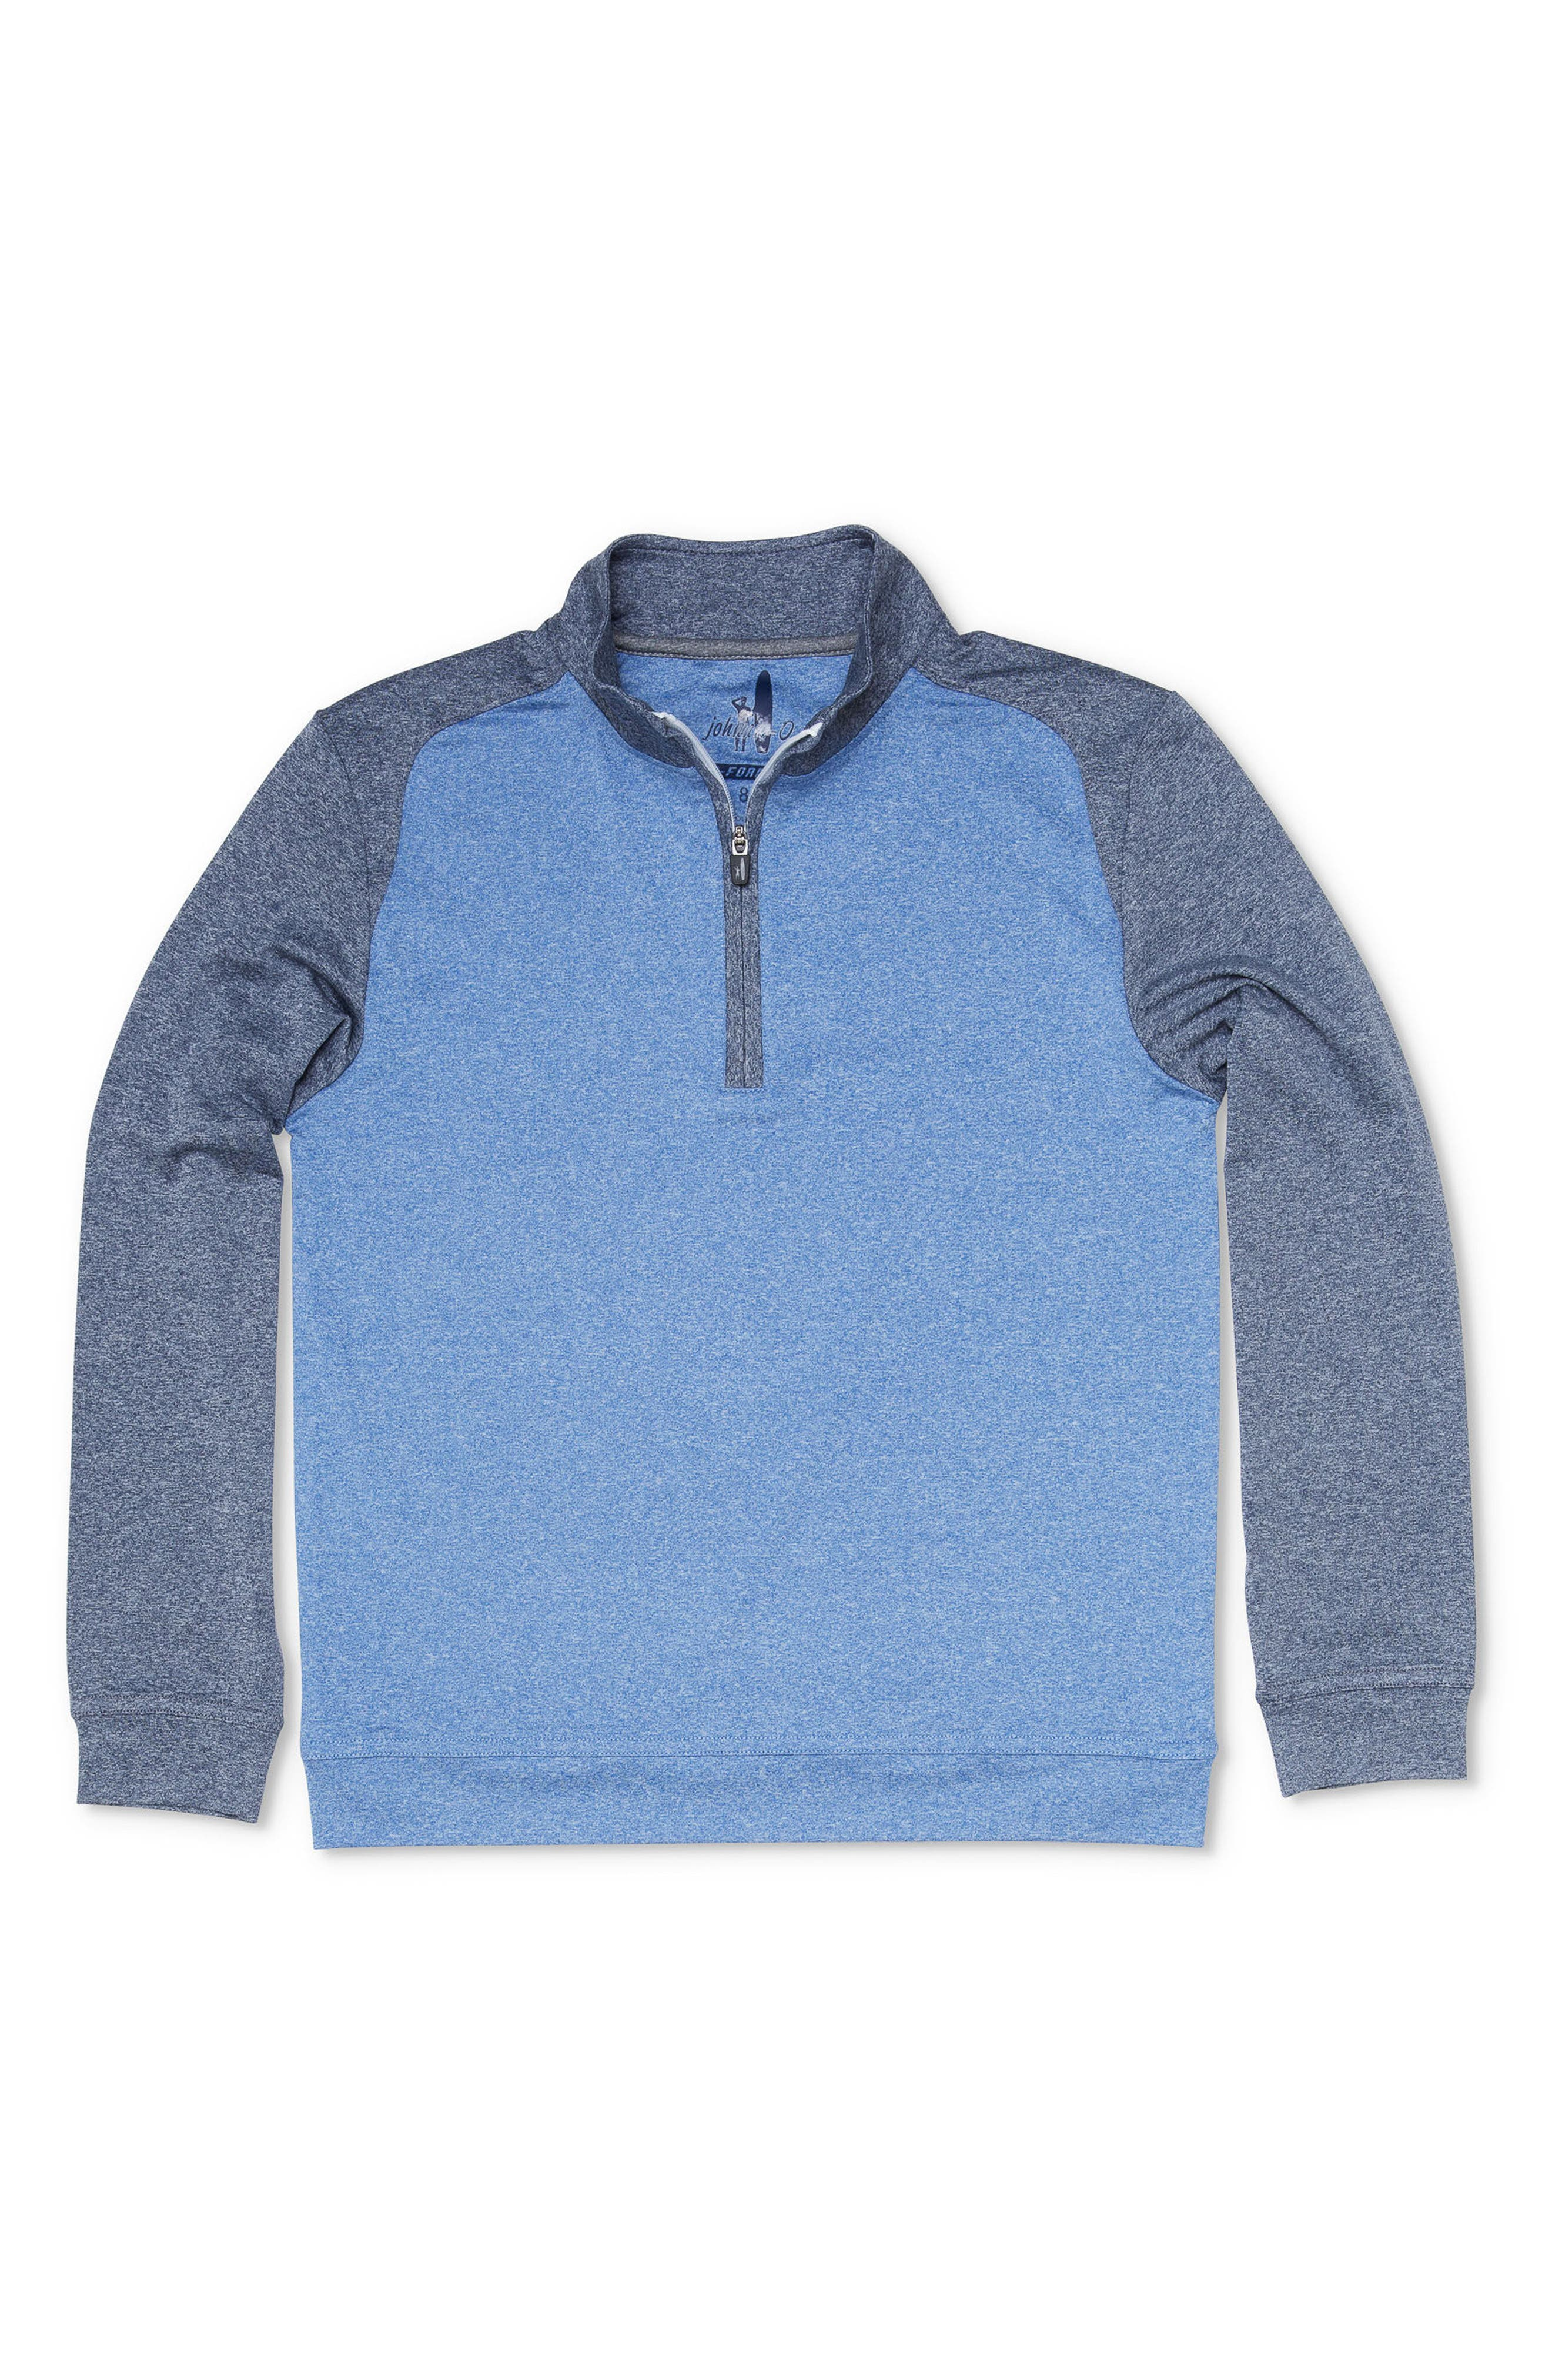 Sway Quarter Zip Pullover,                             Main thumbnail 1, color,                             Abyss